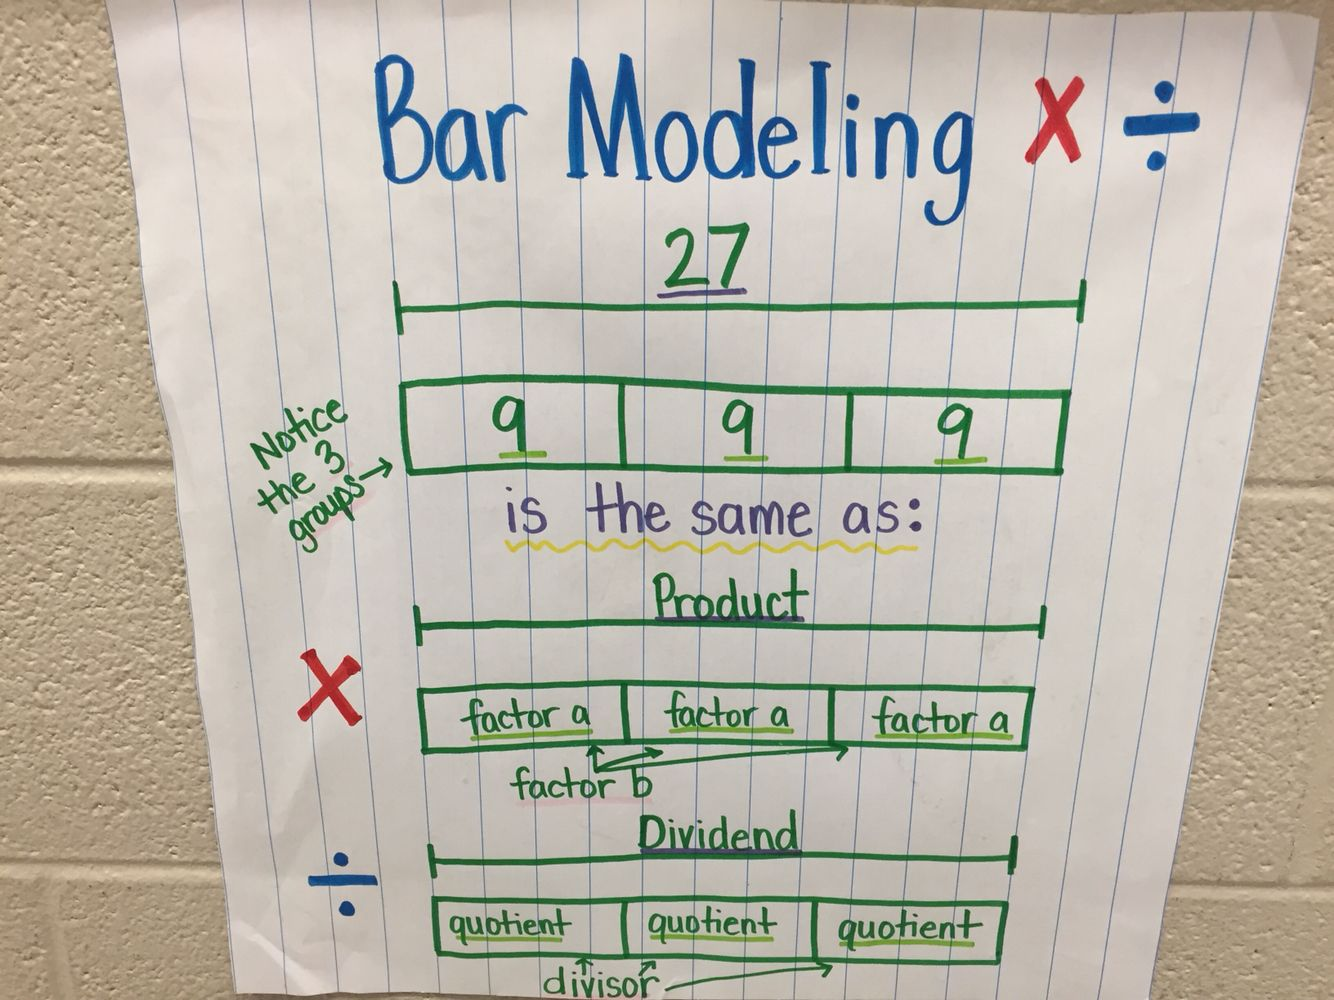 Tape Diagram Anchor Chart Multiplication Hoops U Basketball Court Bar Modeling And Division Mrs Dobbs